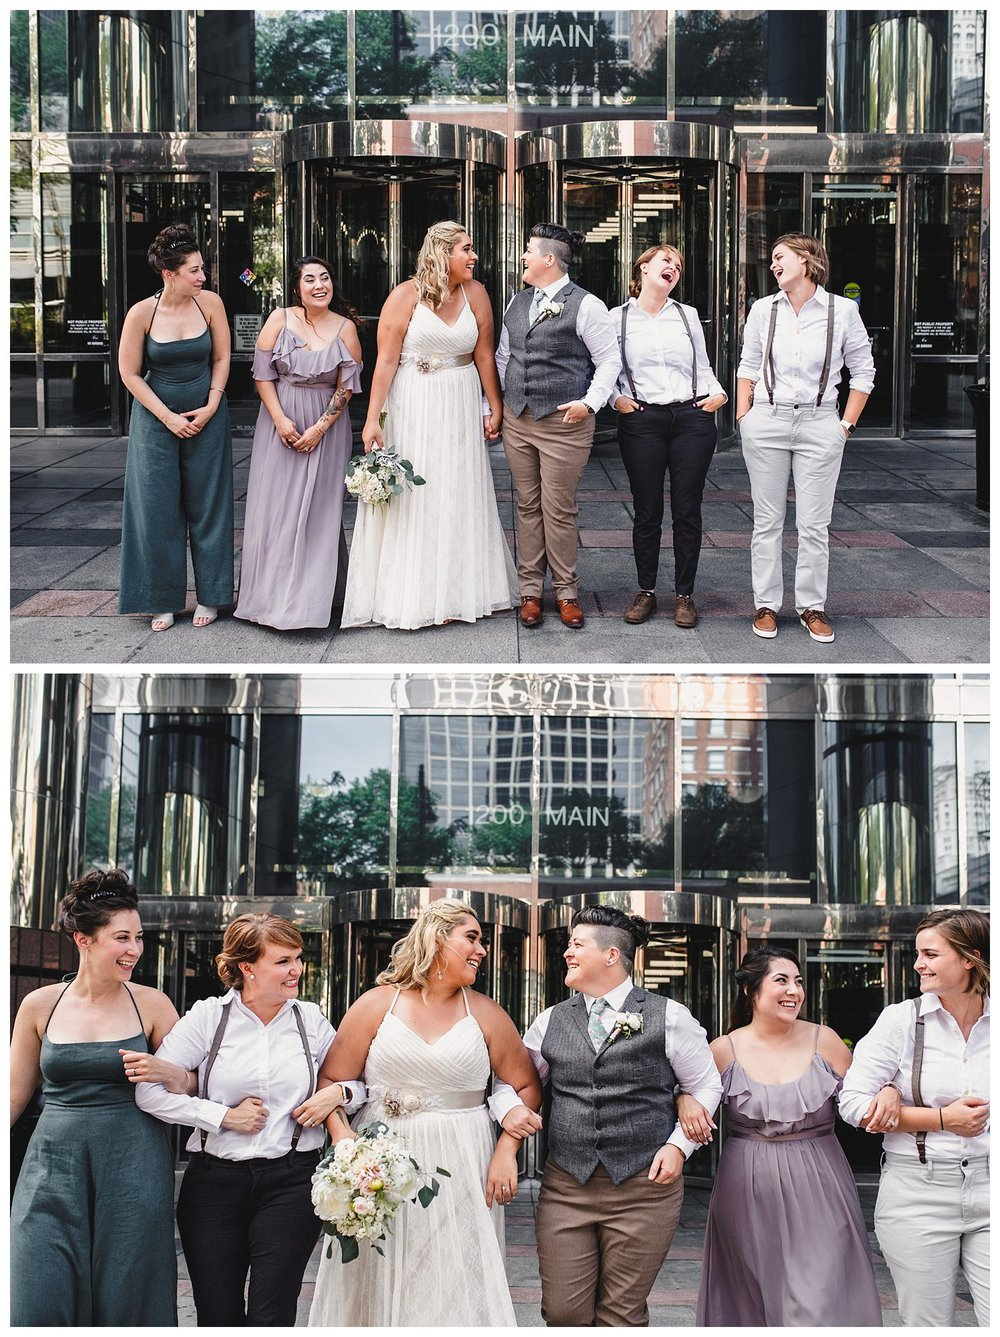 Kelsey_Diane_Photography_The_Vow_Exchange_Kansas_City_LGBT_Friendly_Wedding_Photographer_Kansas_City_Scout_Ica_0720.jpg